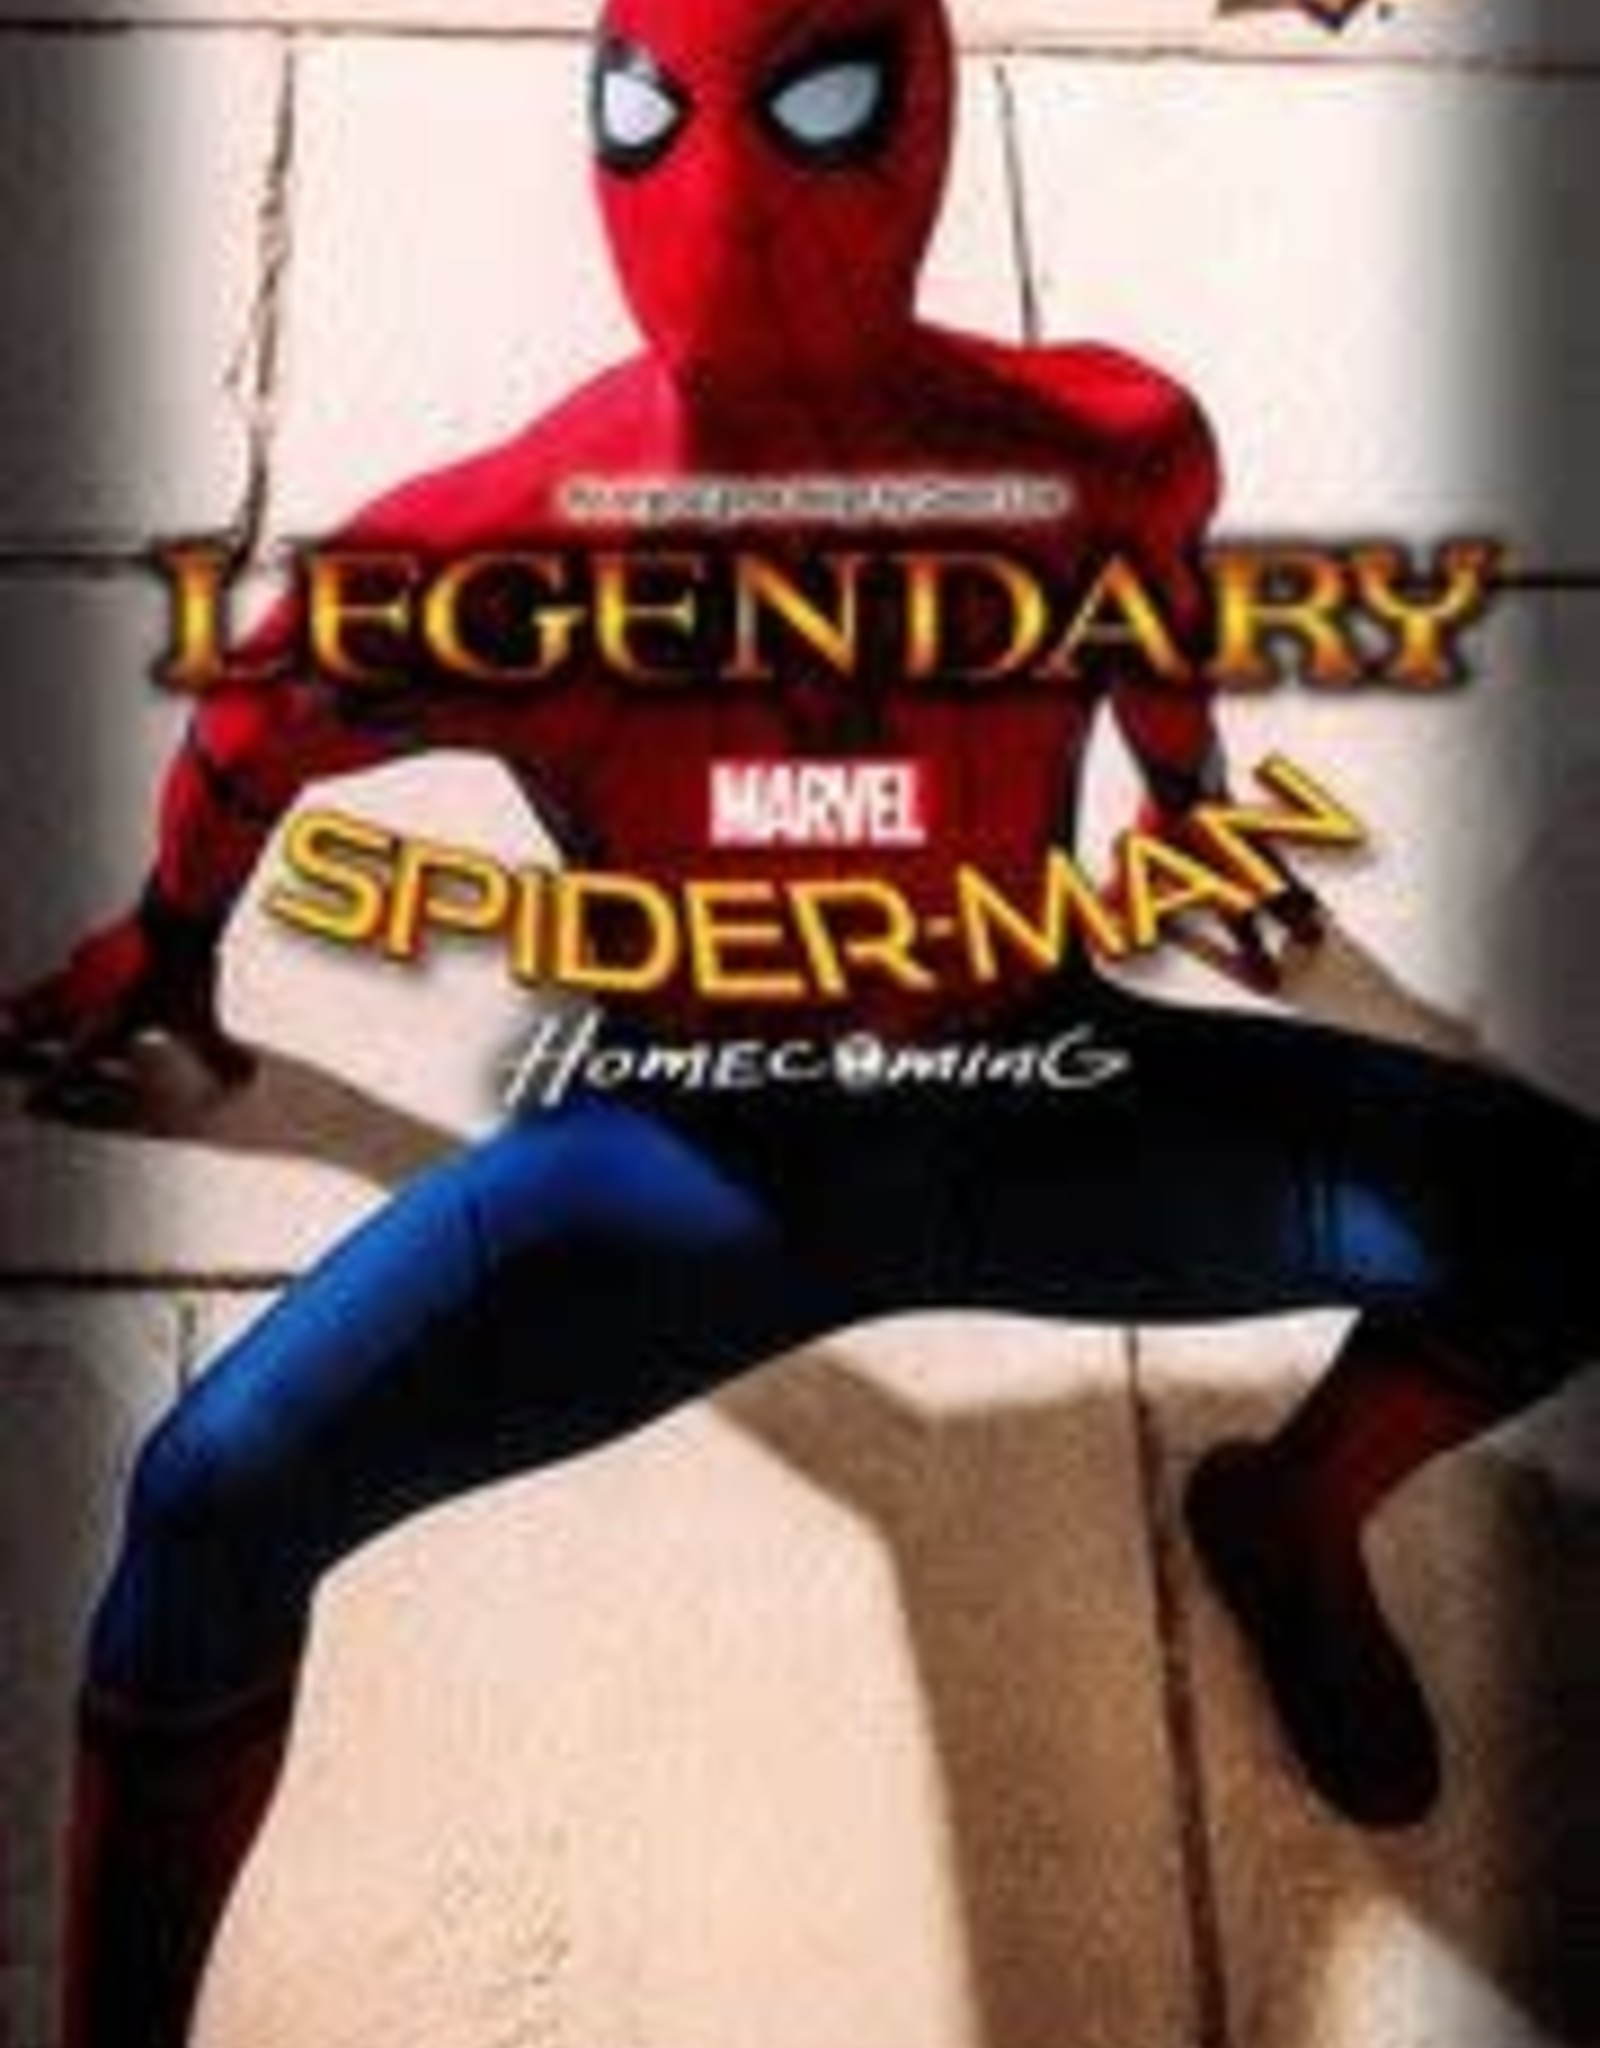 Legendary DBG: Spider-Man Homecoming Expansion